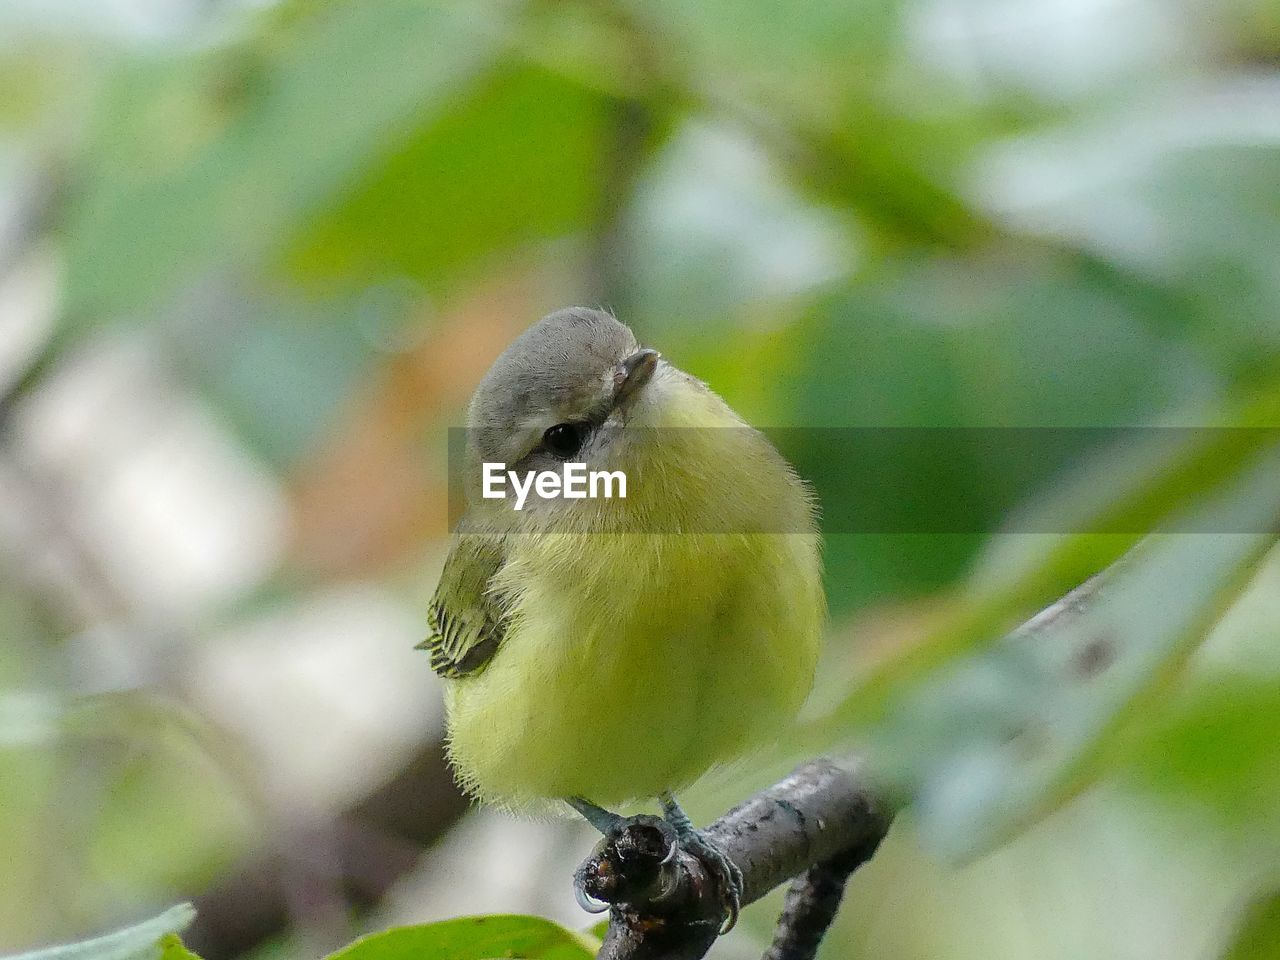 animal themes, bird, animal, animal wildlife, animals in the wild, one animal, vertebrate, perching, focus on foreground, no people, day, close-up, plant, nature, branch, tree, outdoors, bluetit, green color, twig